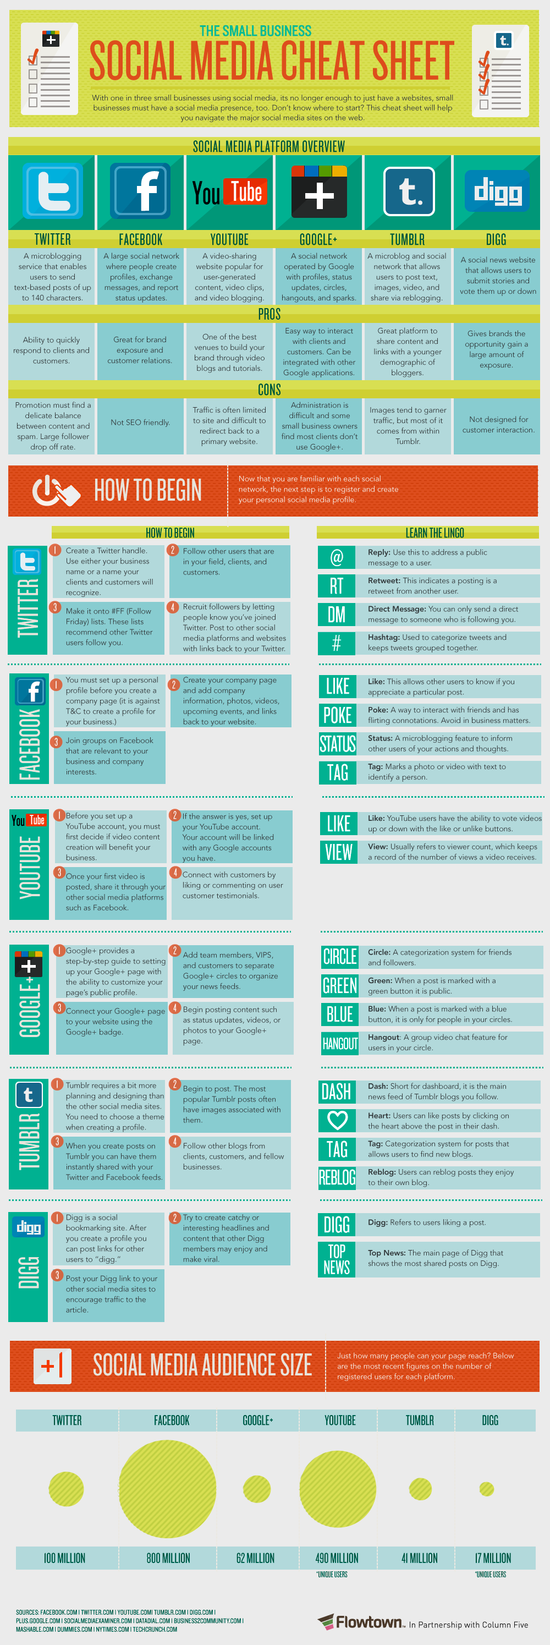 The Small Business Social Media Cheat Sheet - Flowtown, In Partnership with Column Five - Jan 2012